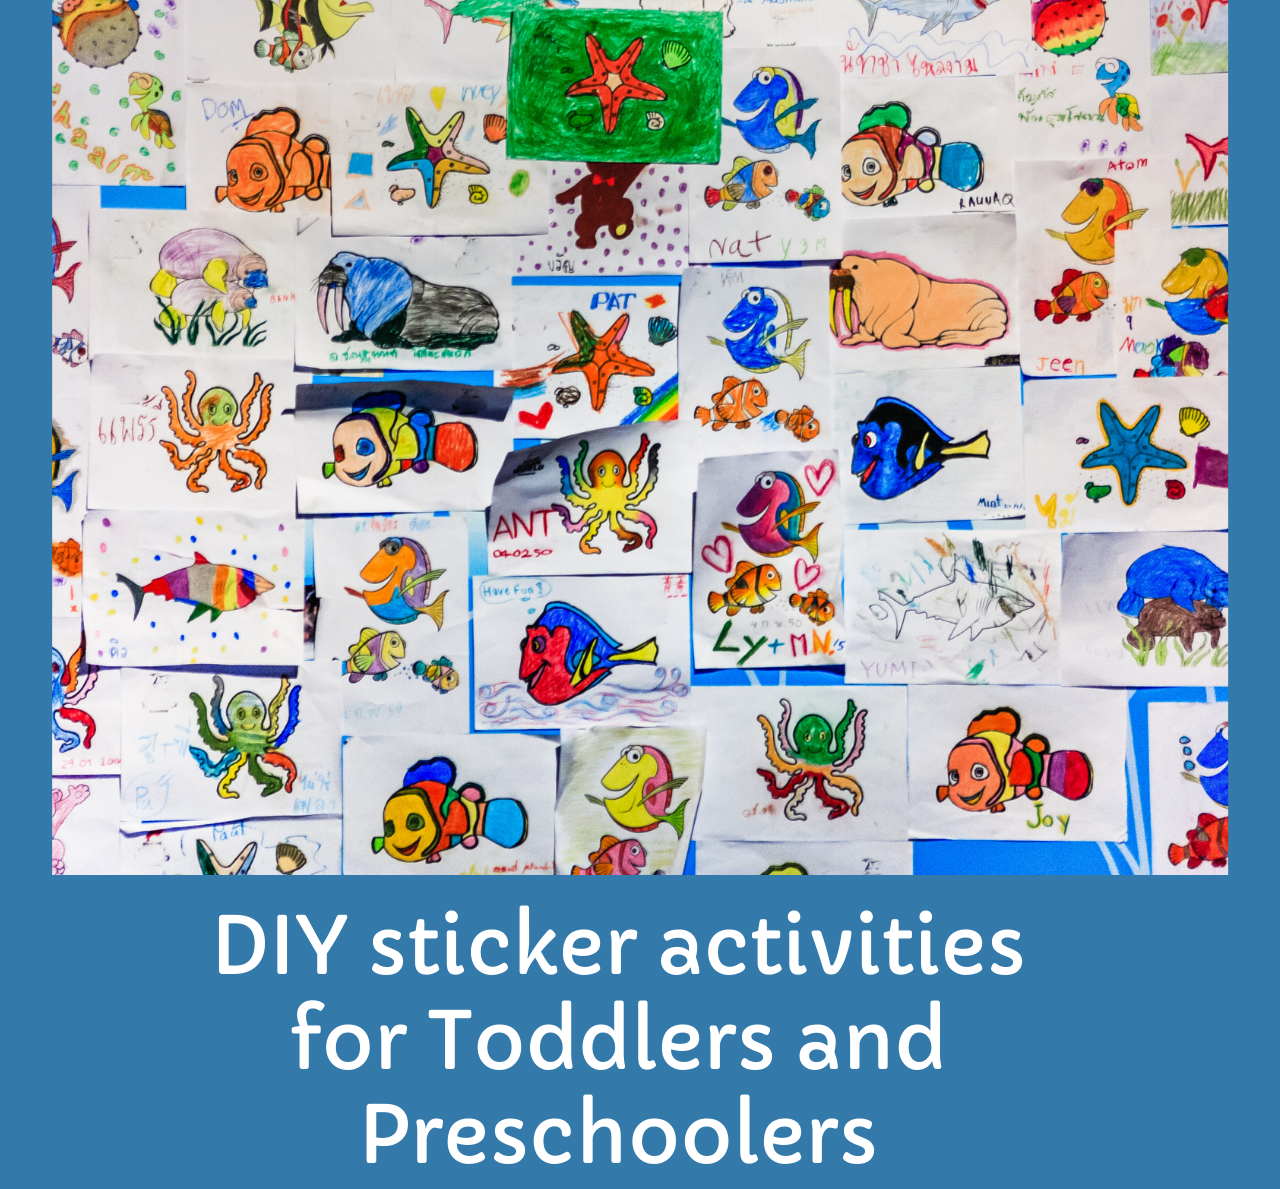 Sticker activities for Children